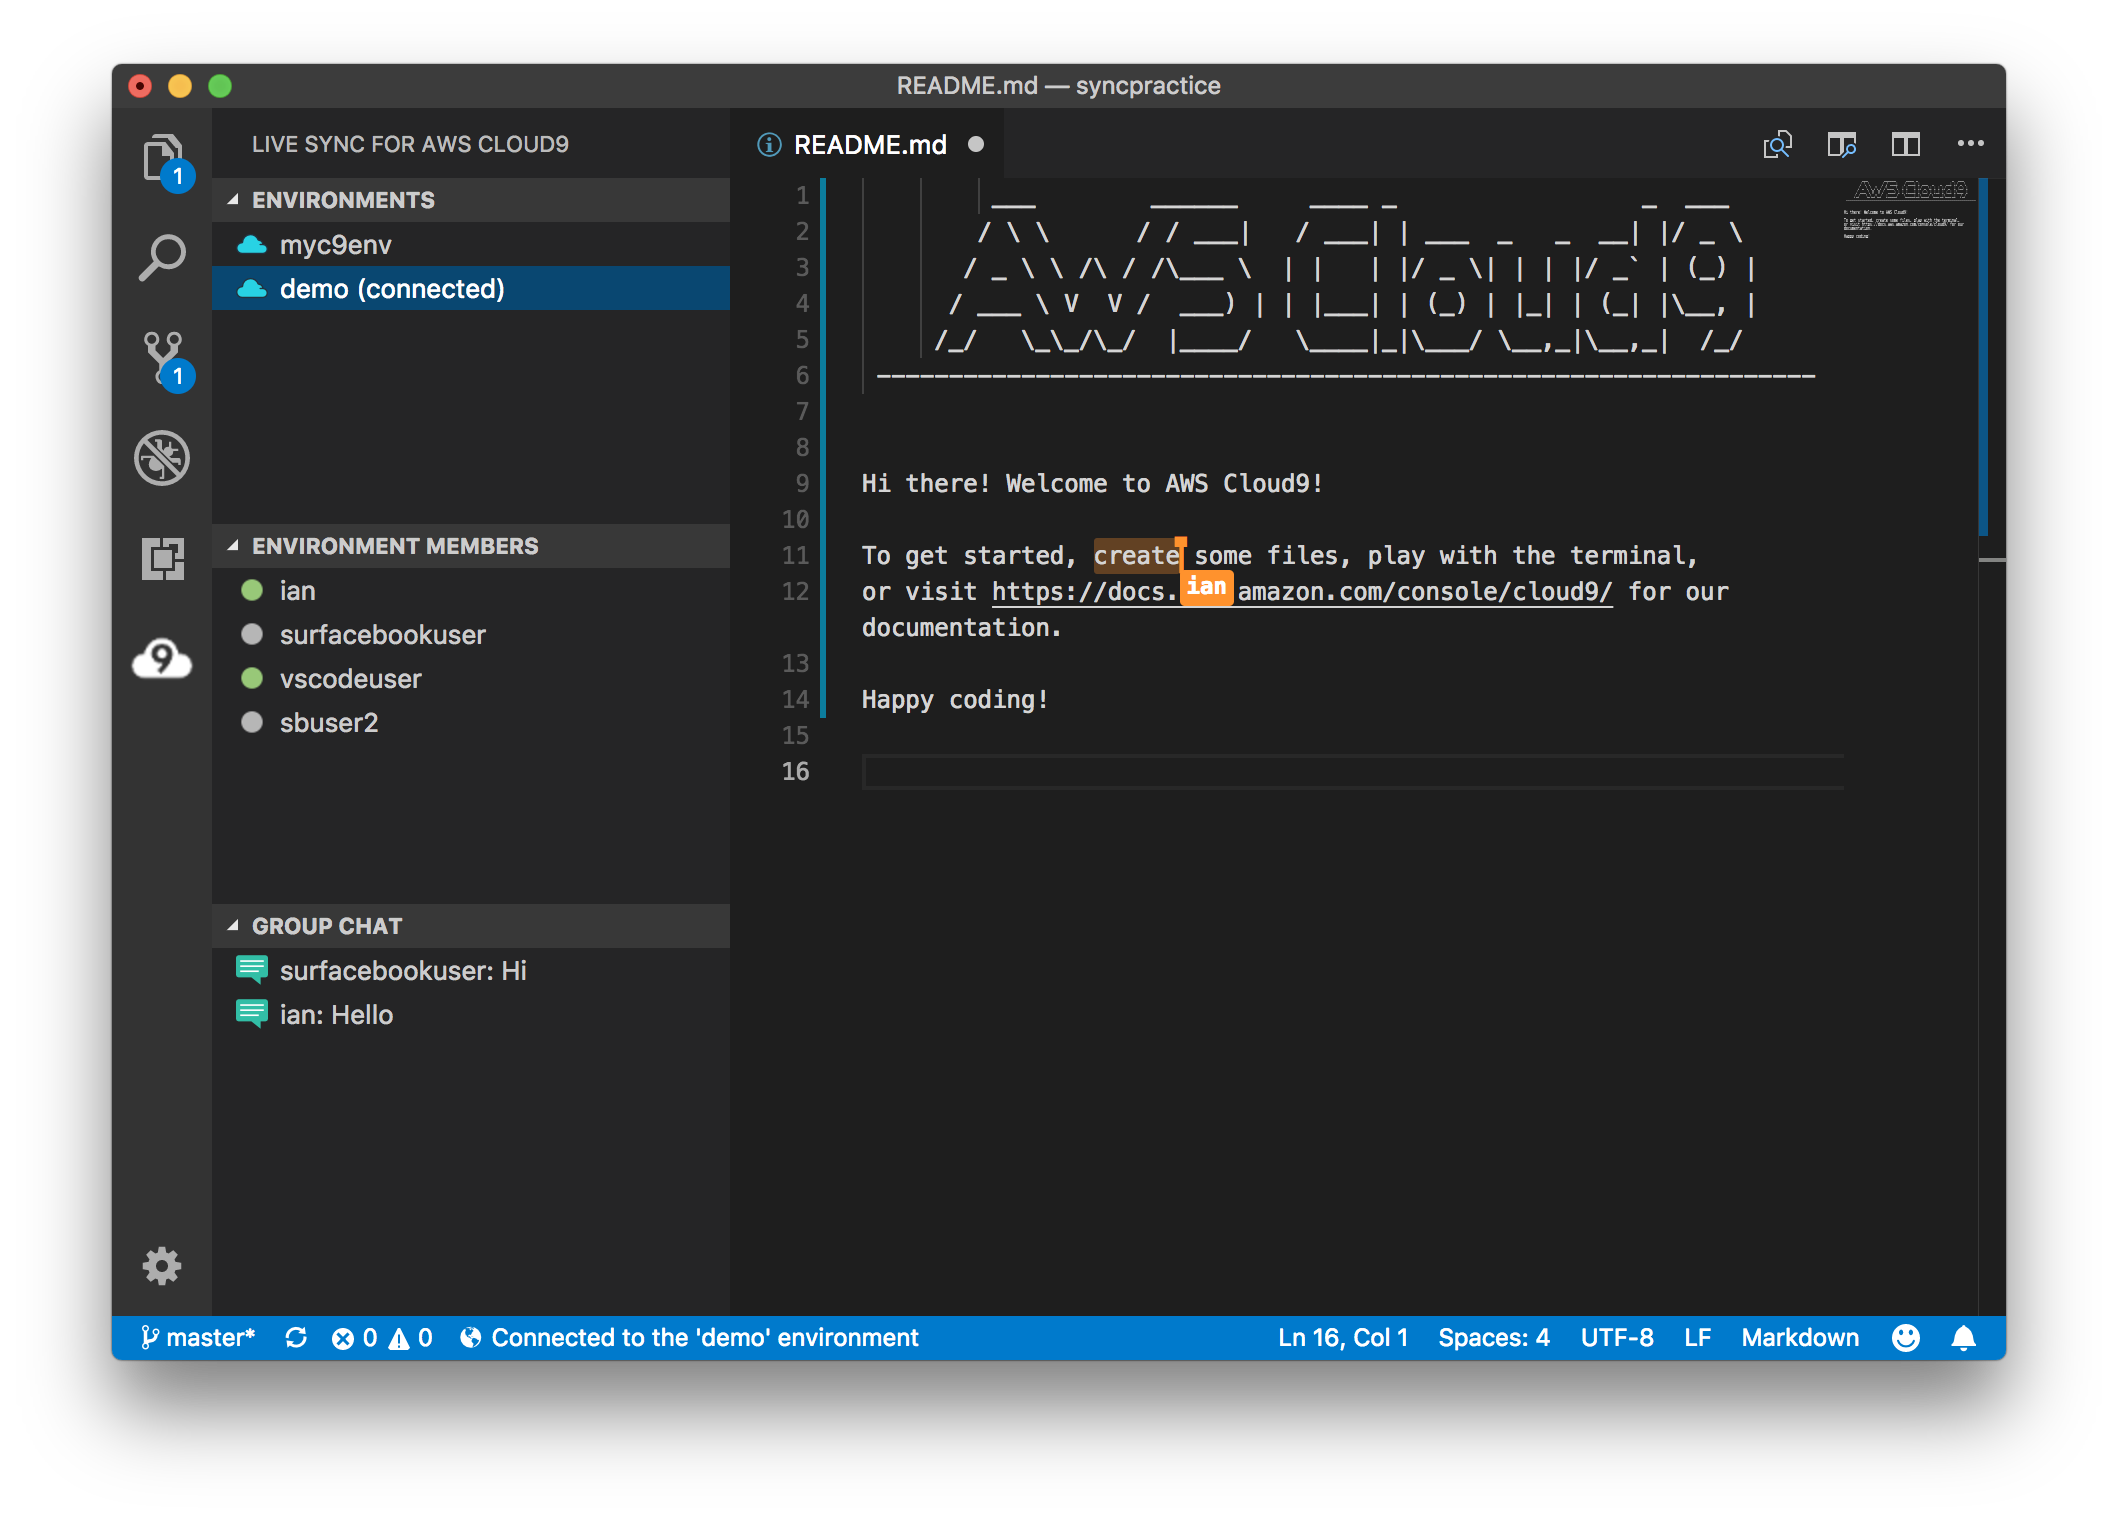 Live Sync for AWS Cloud9